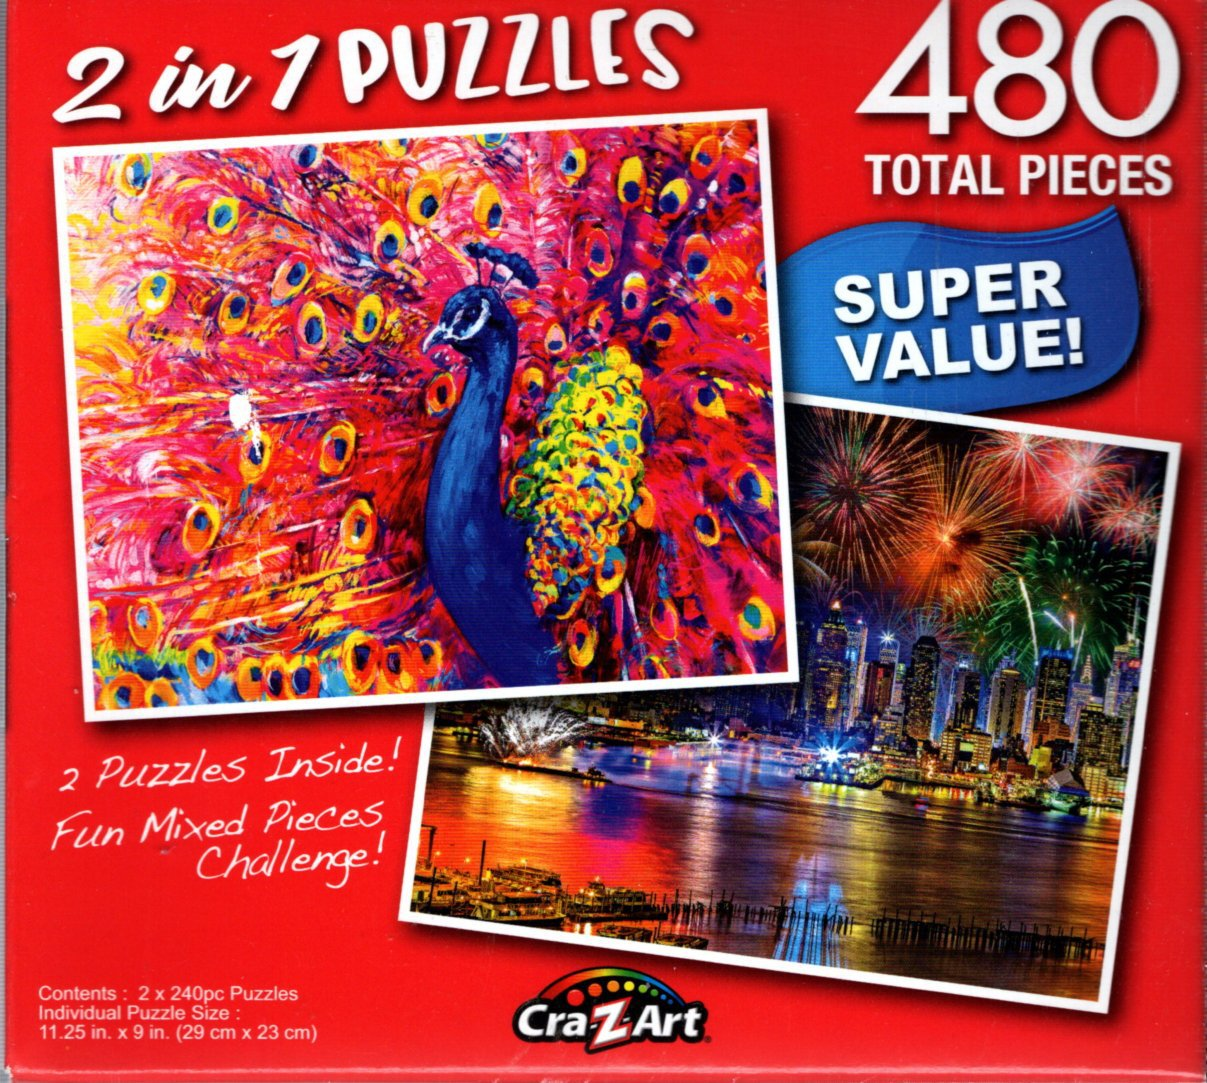 Bright Pink Peacock / Fireworks on the Hudson River - Total 480 Piece 2 in 1 Jigsaw Puzzles p015